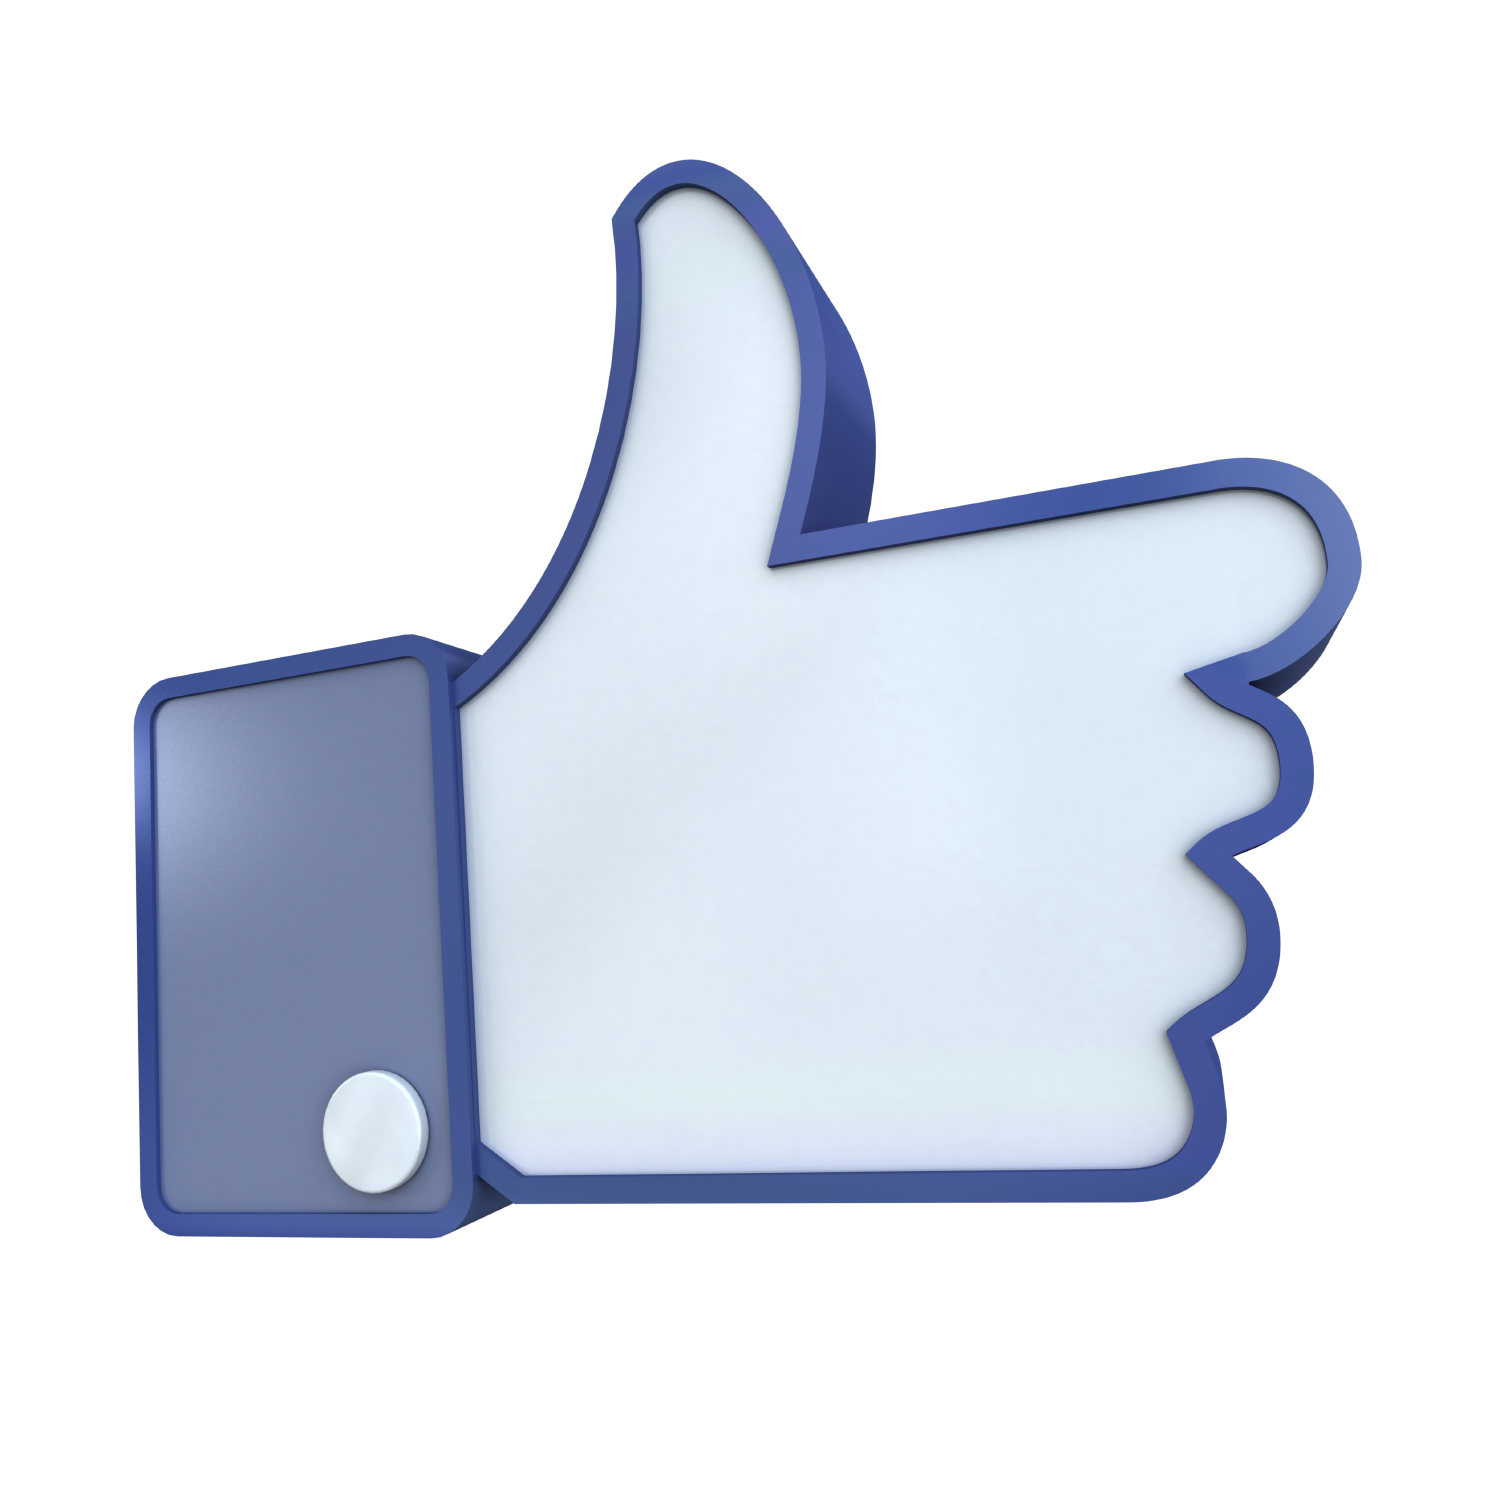 17 Thumbs Up Emoticon Facebook Images